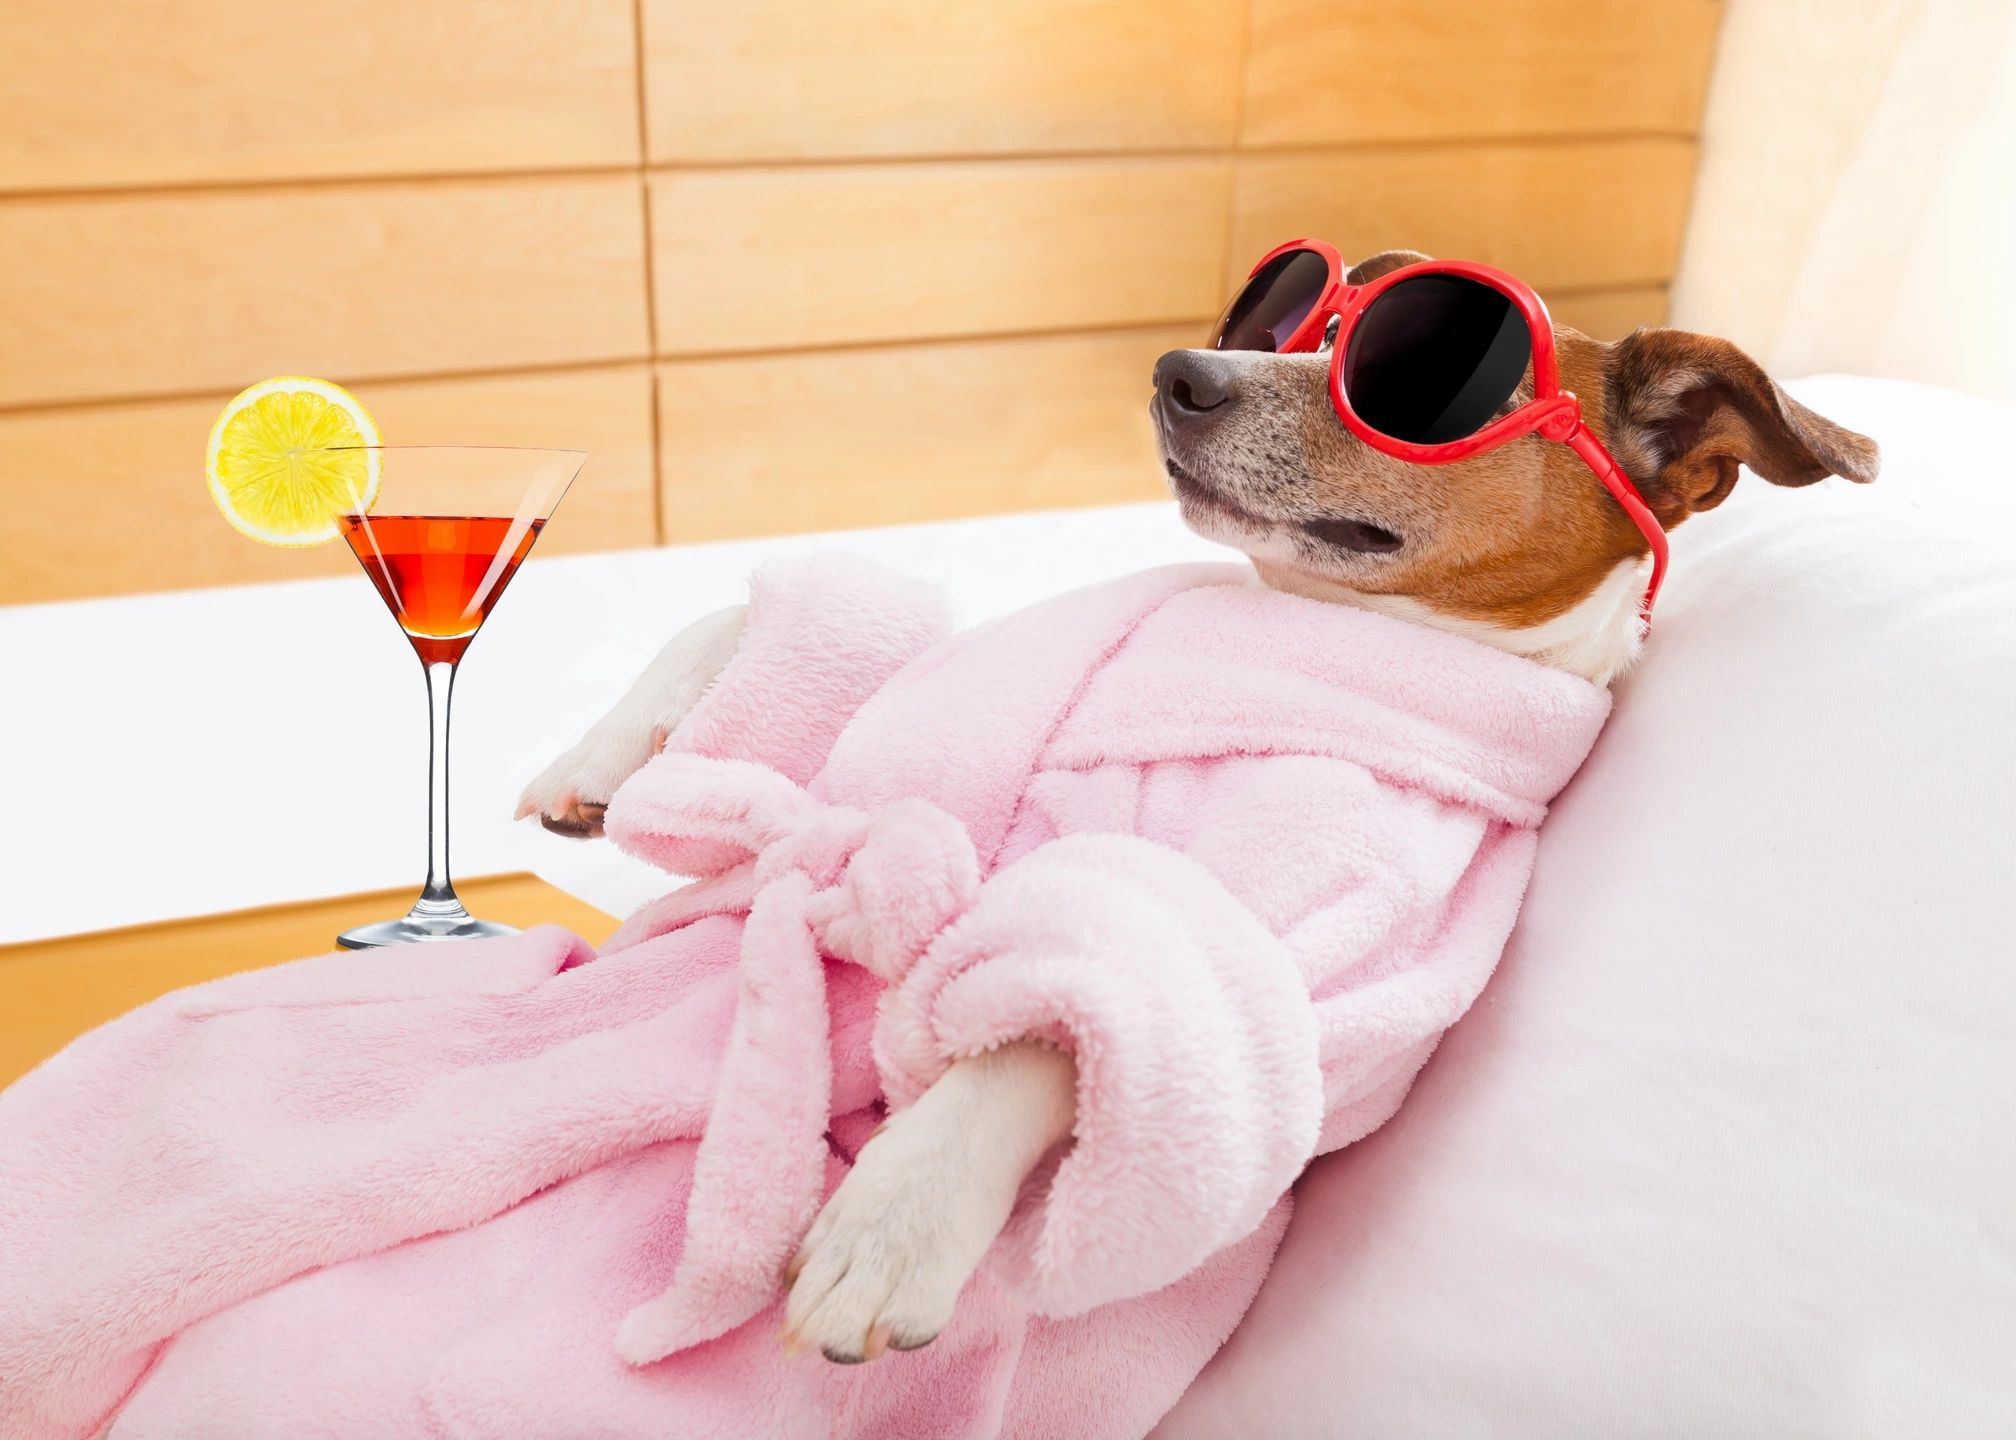 Dog lounging at the spa in robe and sunglasses